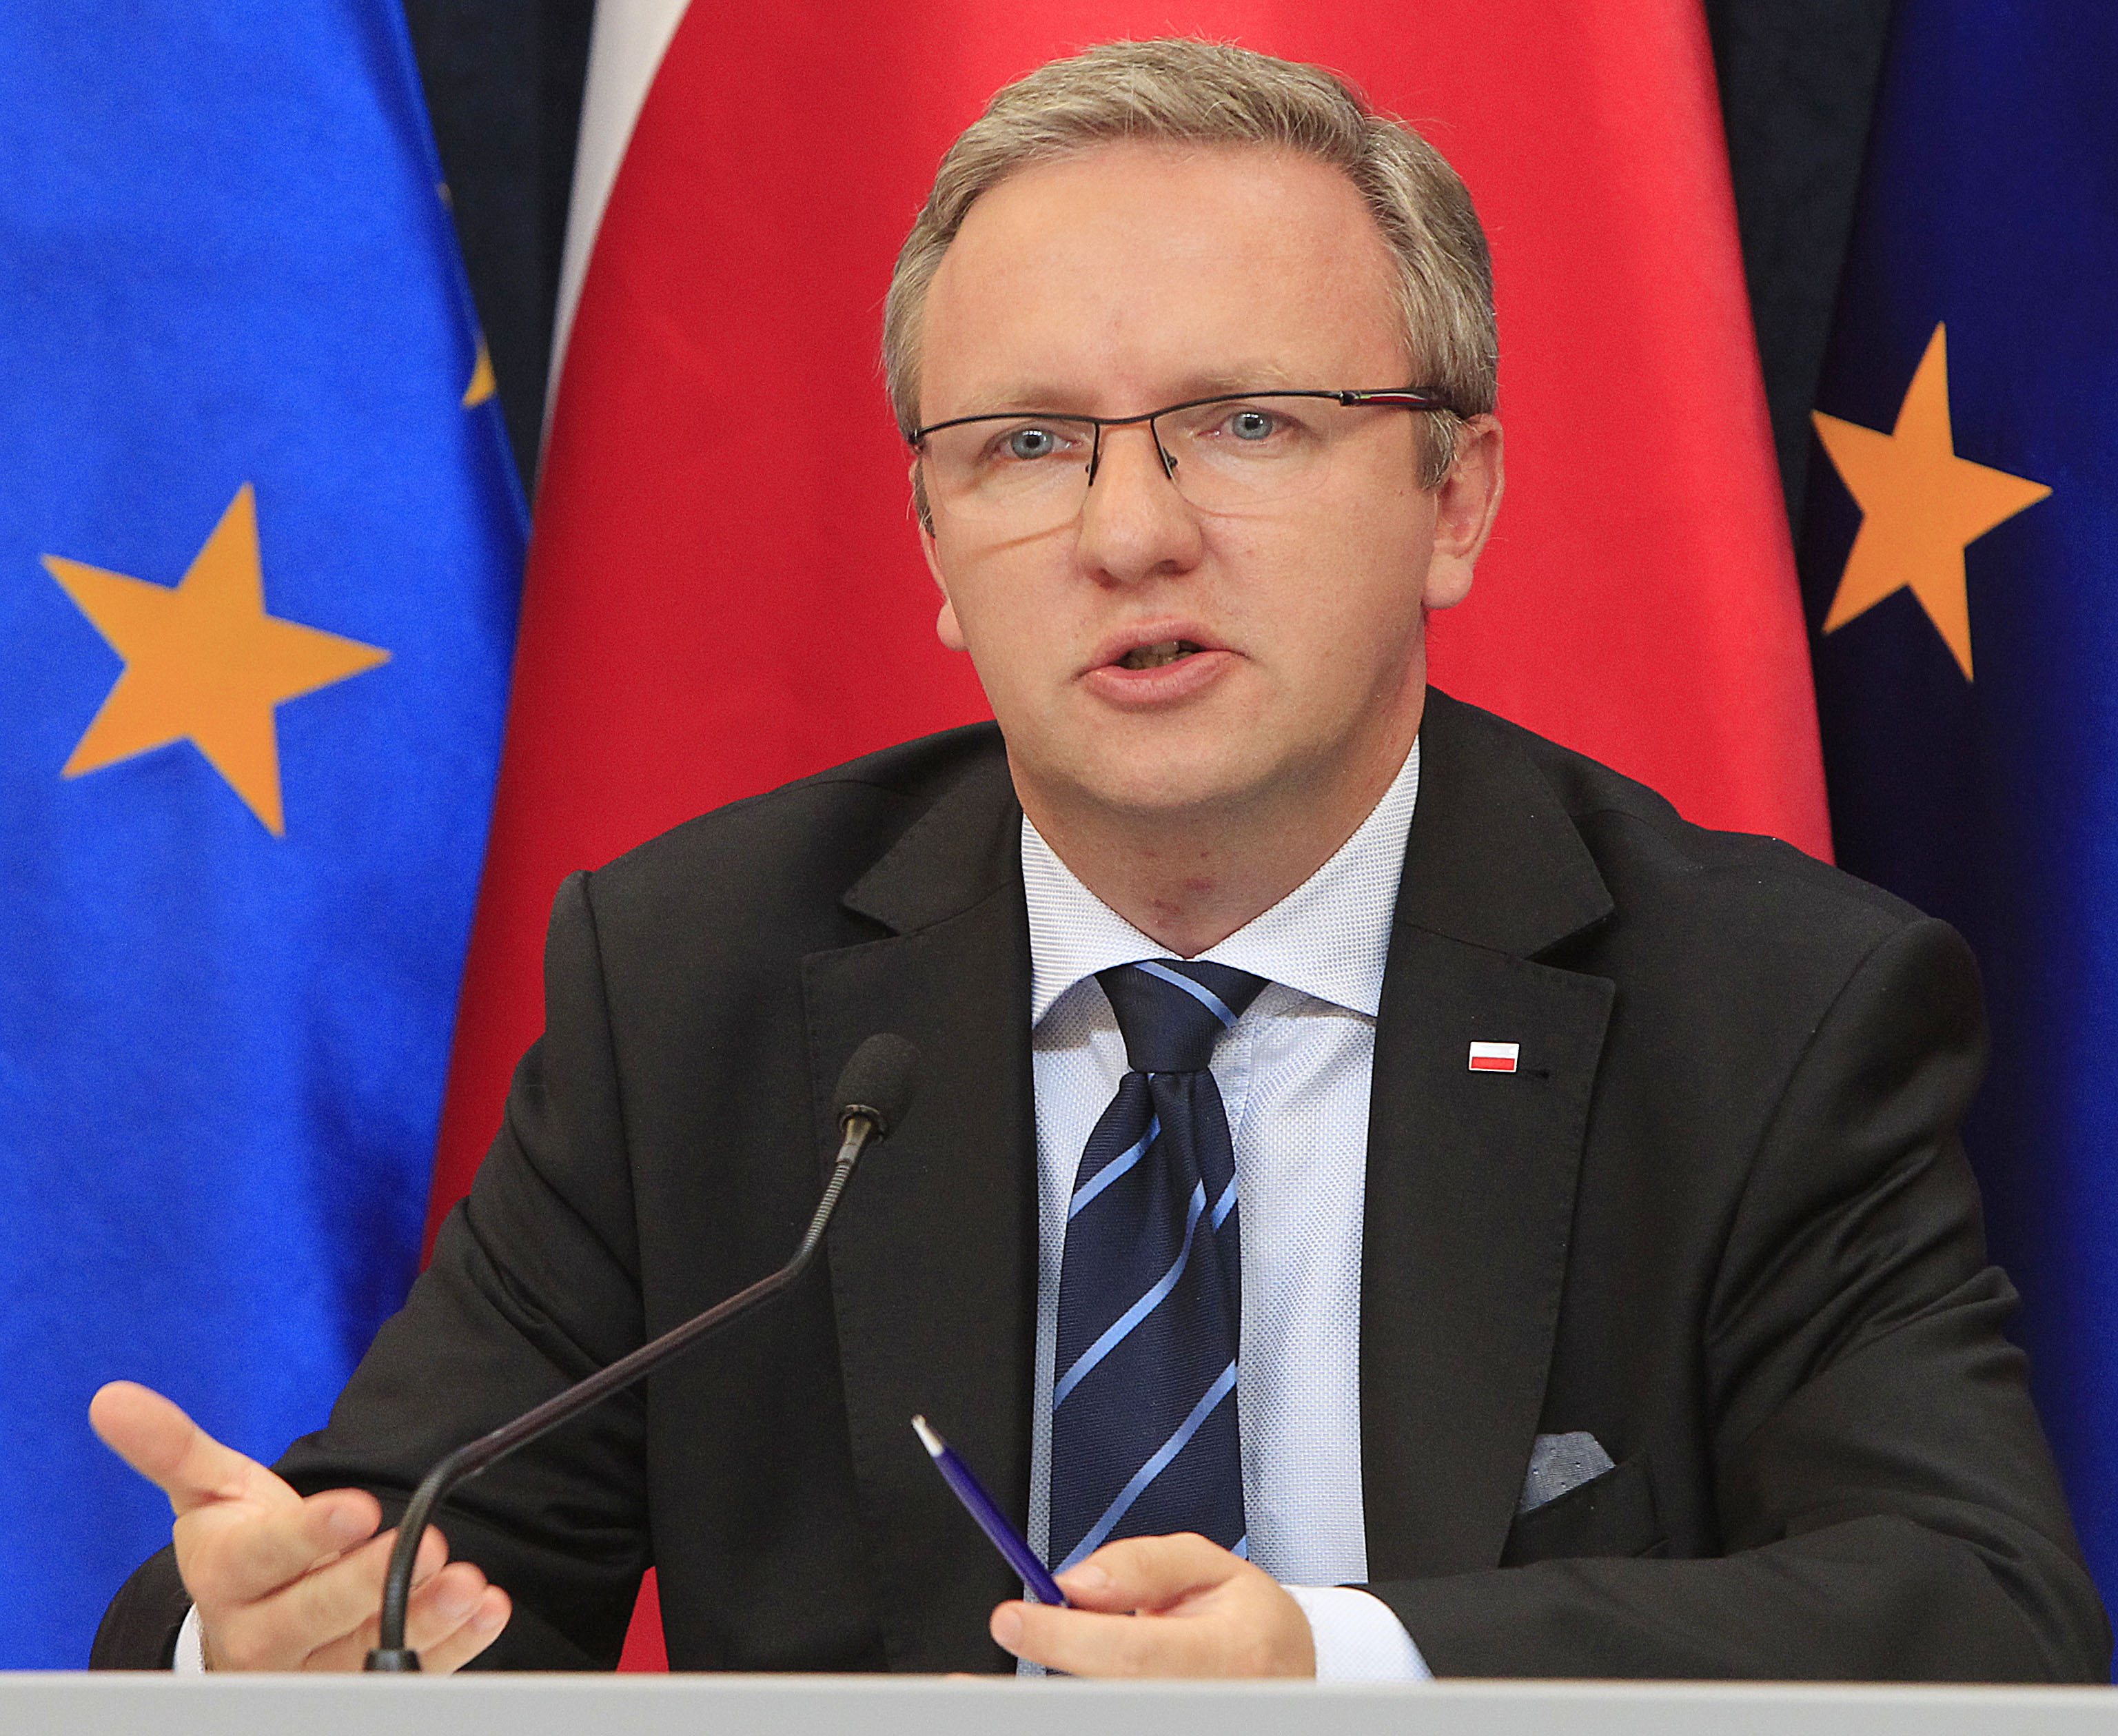 FILE - Krzysztof Szczerski, the foreign policy adviser of Polish President Andrzej Duda, speaks during a news conference at the Presidential Palace in Warsaw, Poland, Aug. 17, 2015.